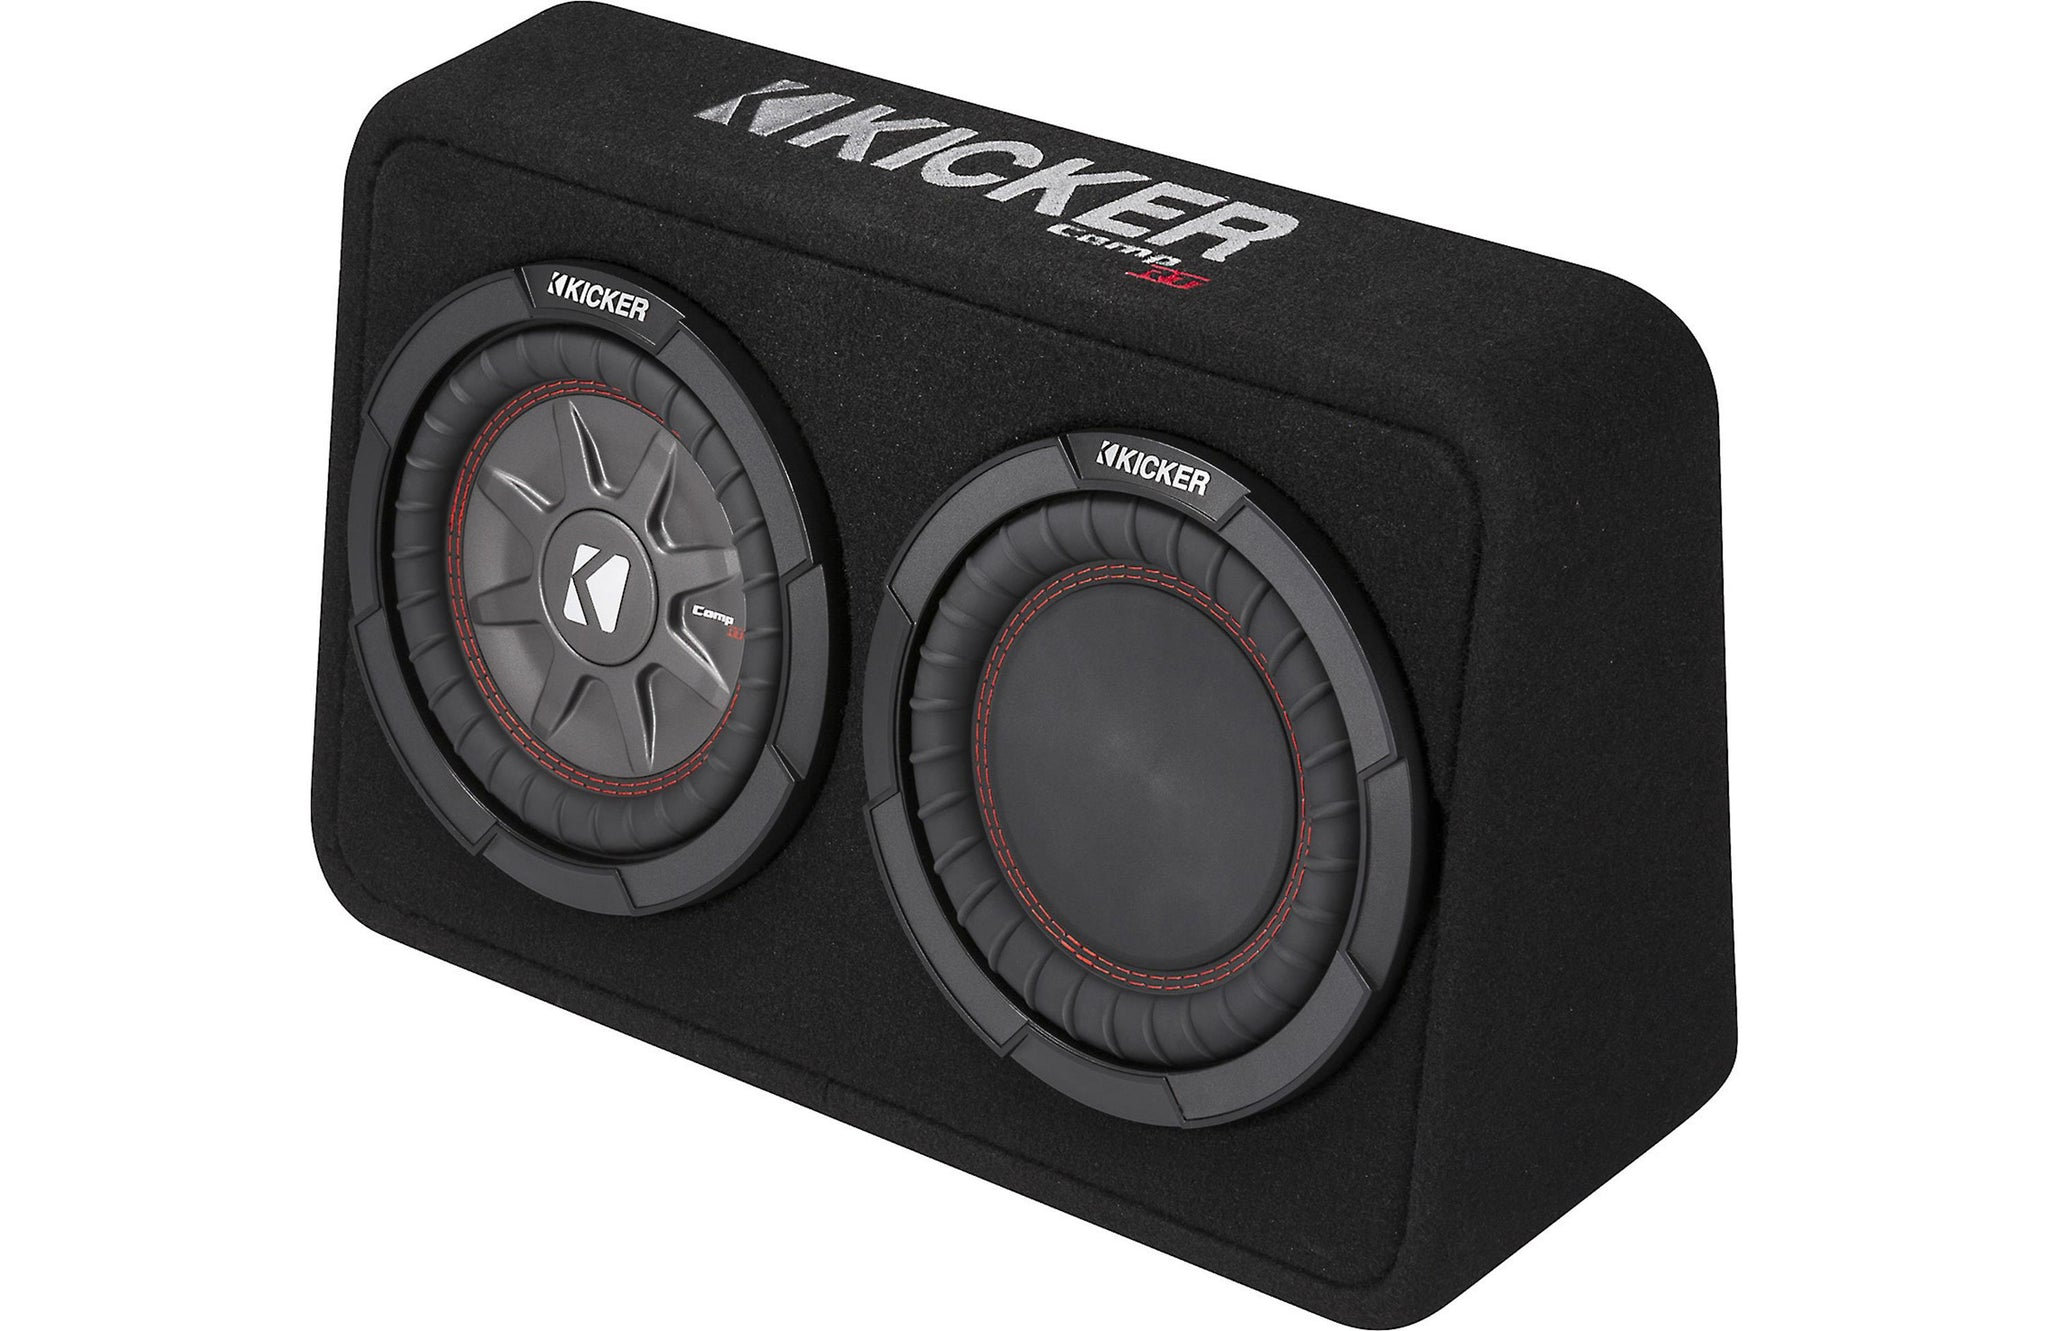 "Kicker CompRT 43TCWRT84 Sealed truck enclosure with one 8"" CompRT subwoofer and passive radiator"